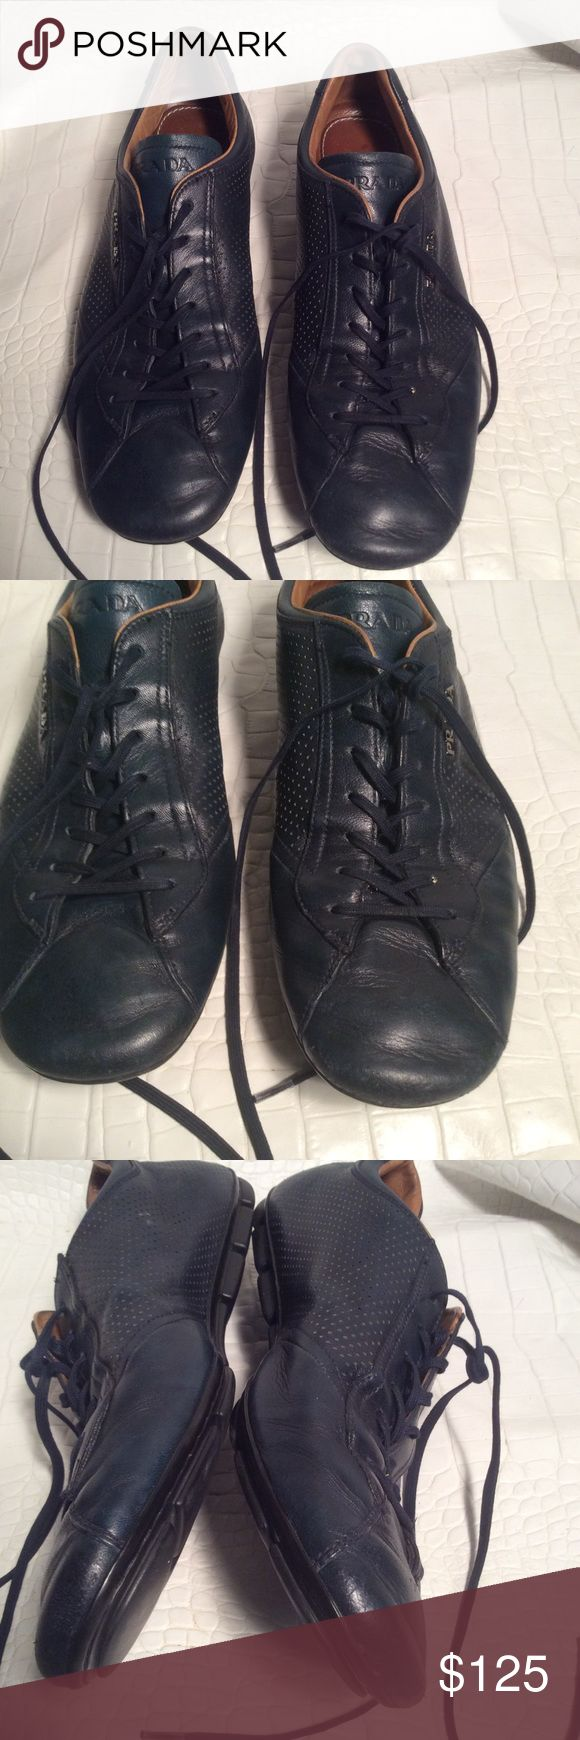 Prada sneakers Soft leather Prada sneakers,Preloved has been polished,has some scuff at the front still really nice Prada Shoes Sneakers